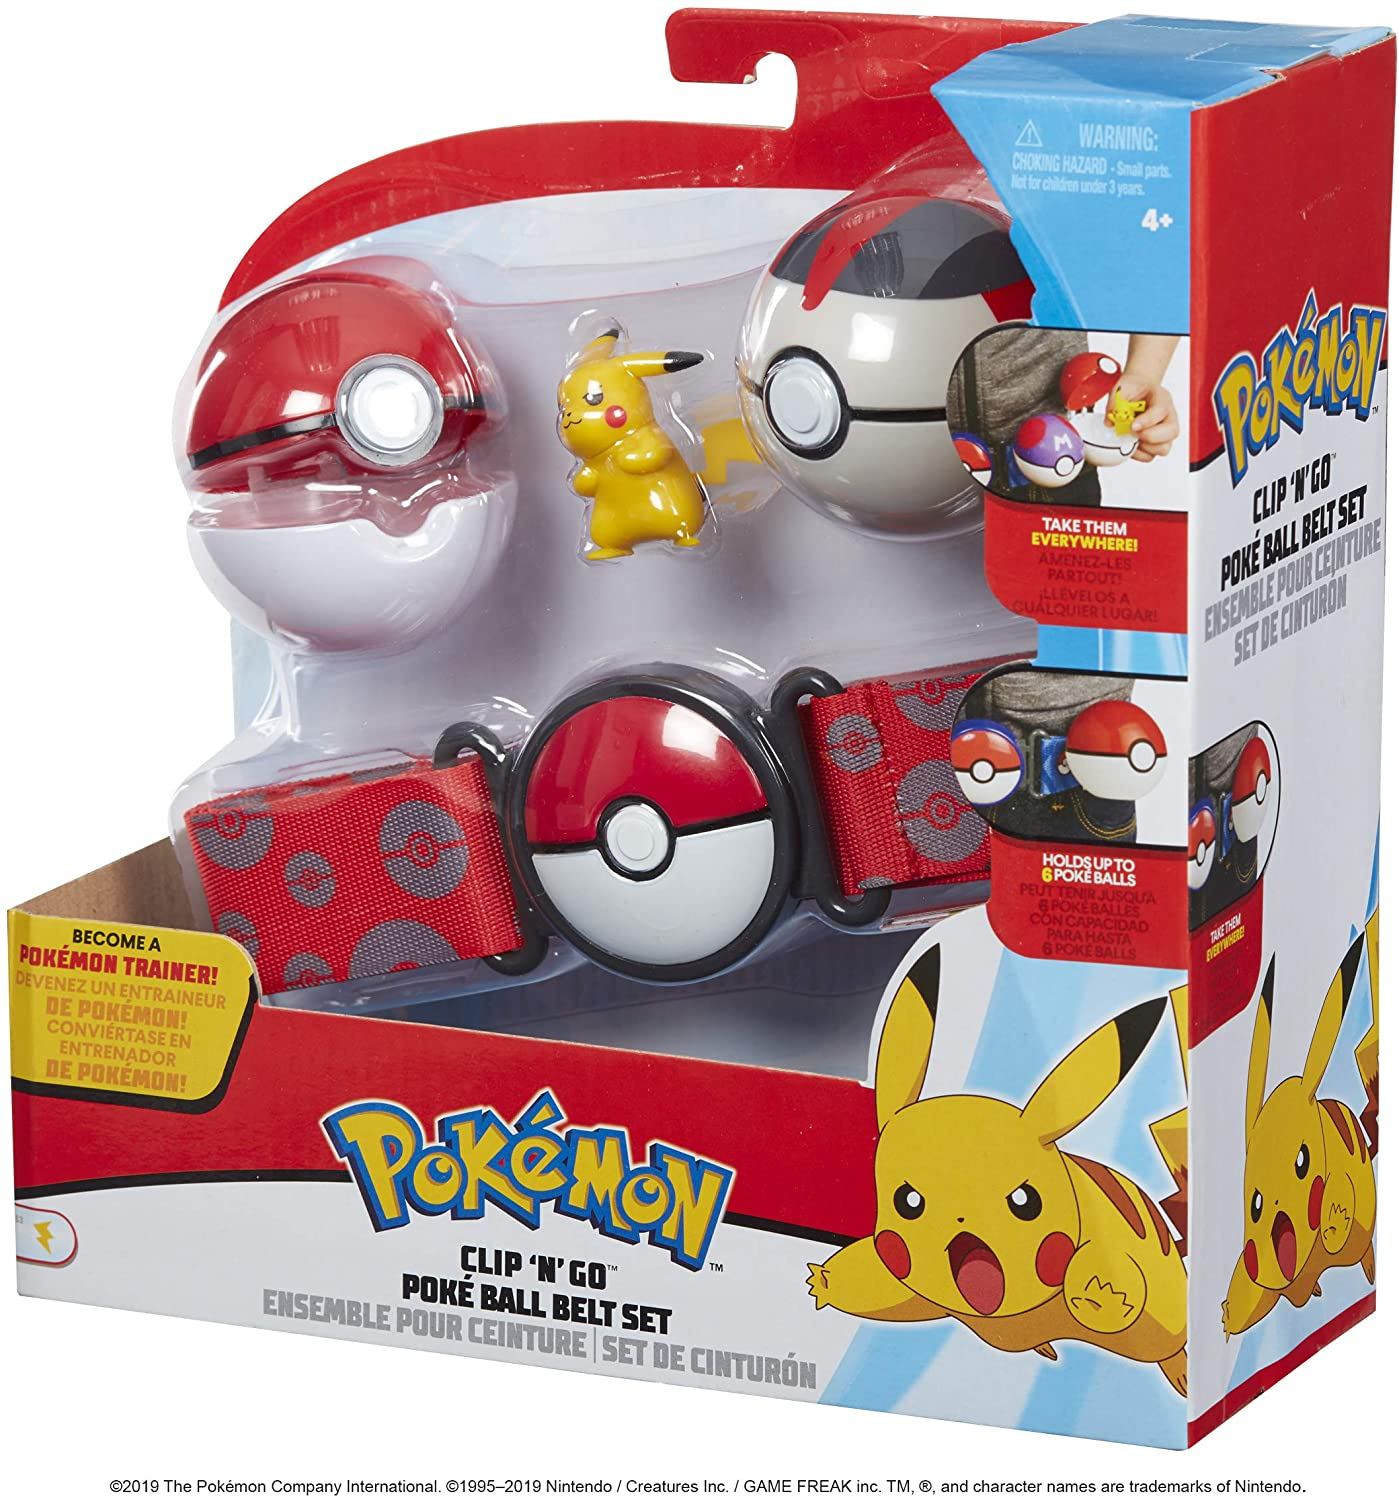 Pokemon Clip 'N' Go Poke Ball Belt Set - Pikachu